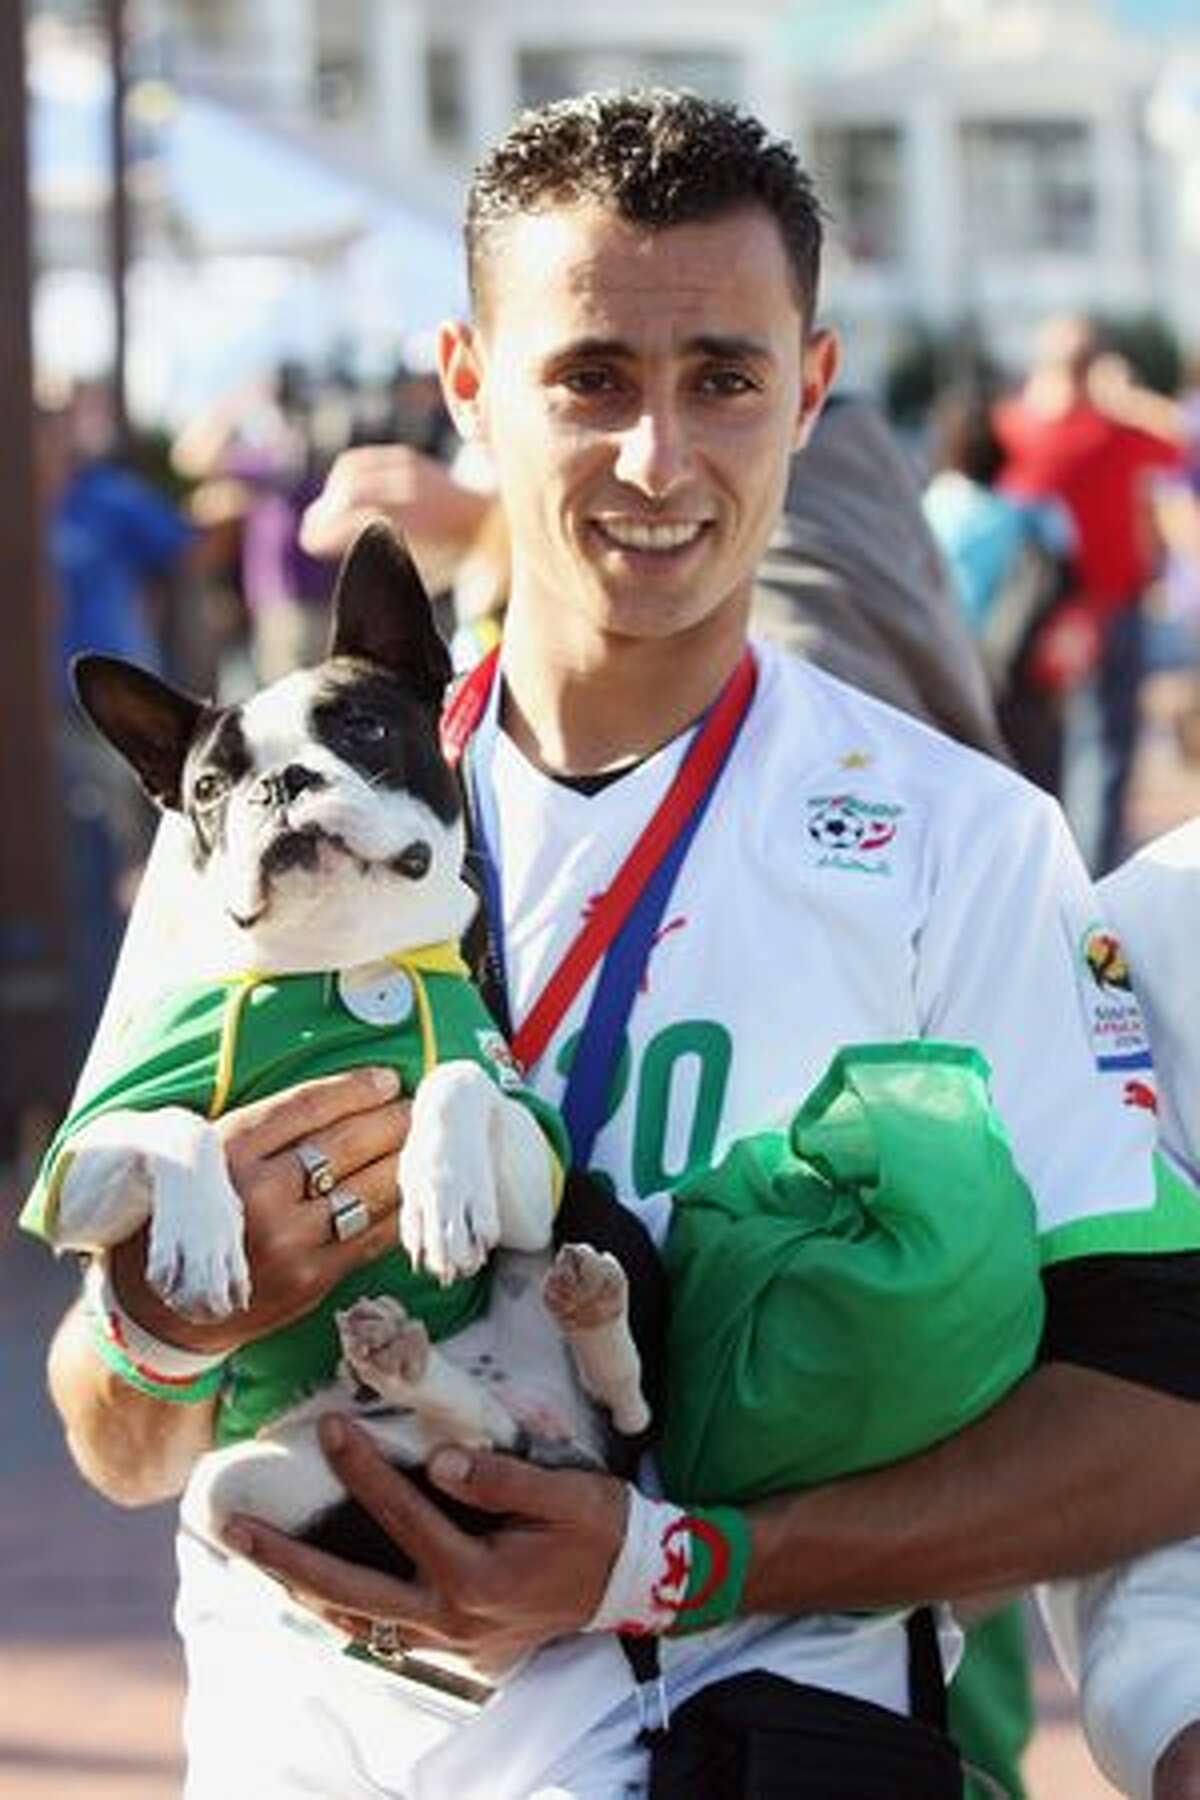 An Algerian fan stands with his dog on the waterfront in Cape Town, South Africa. Cape Town hosts the match between England and Algeria in the second of their group stage matches on Friday.